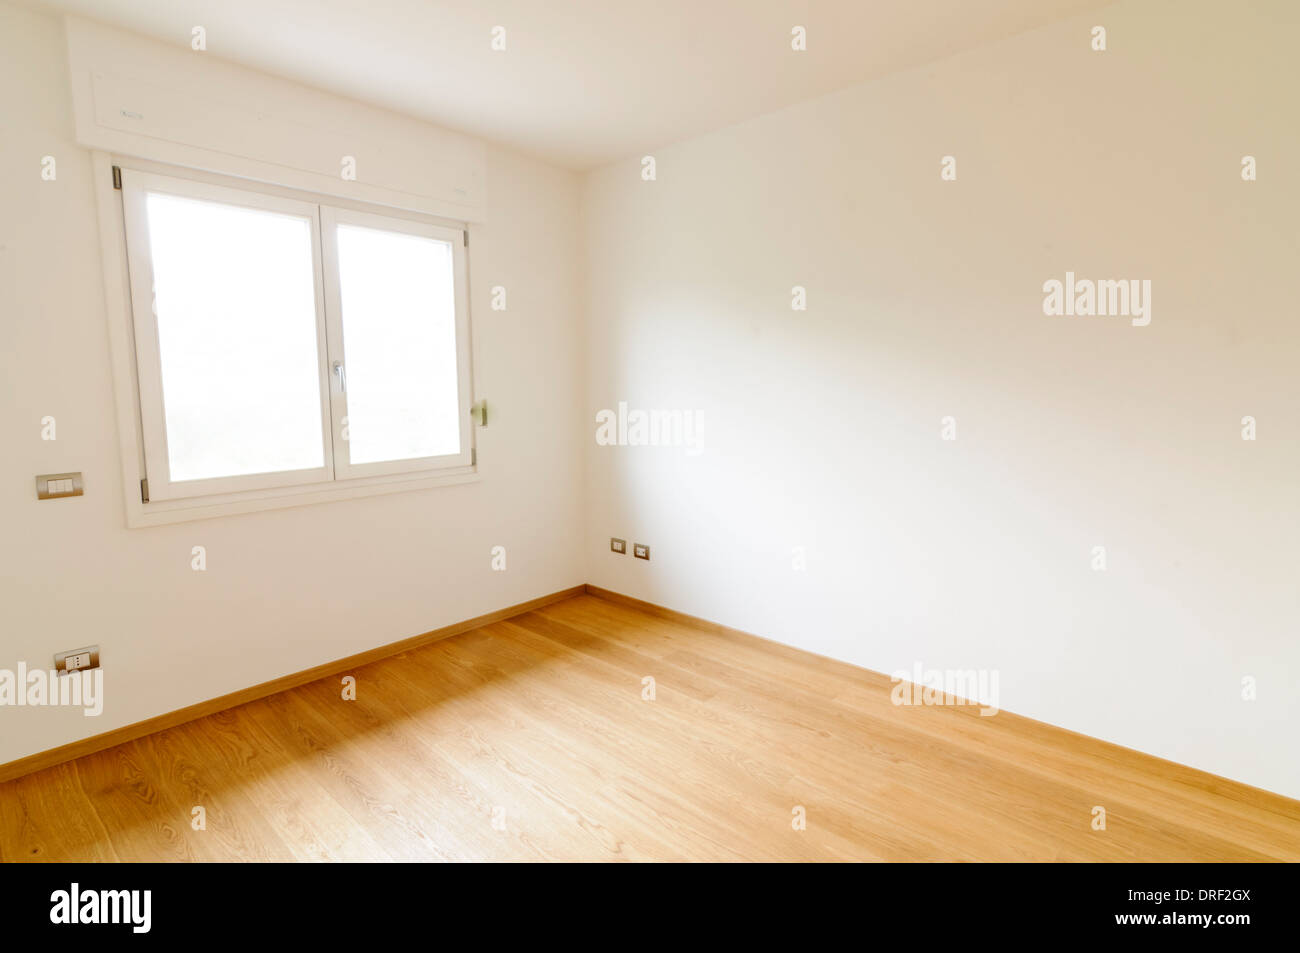 Spacious empty room with white walls, window and parquet floor - Stock Image